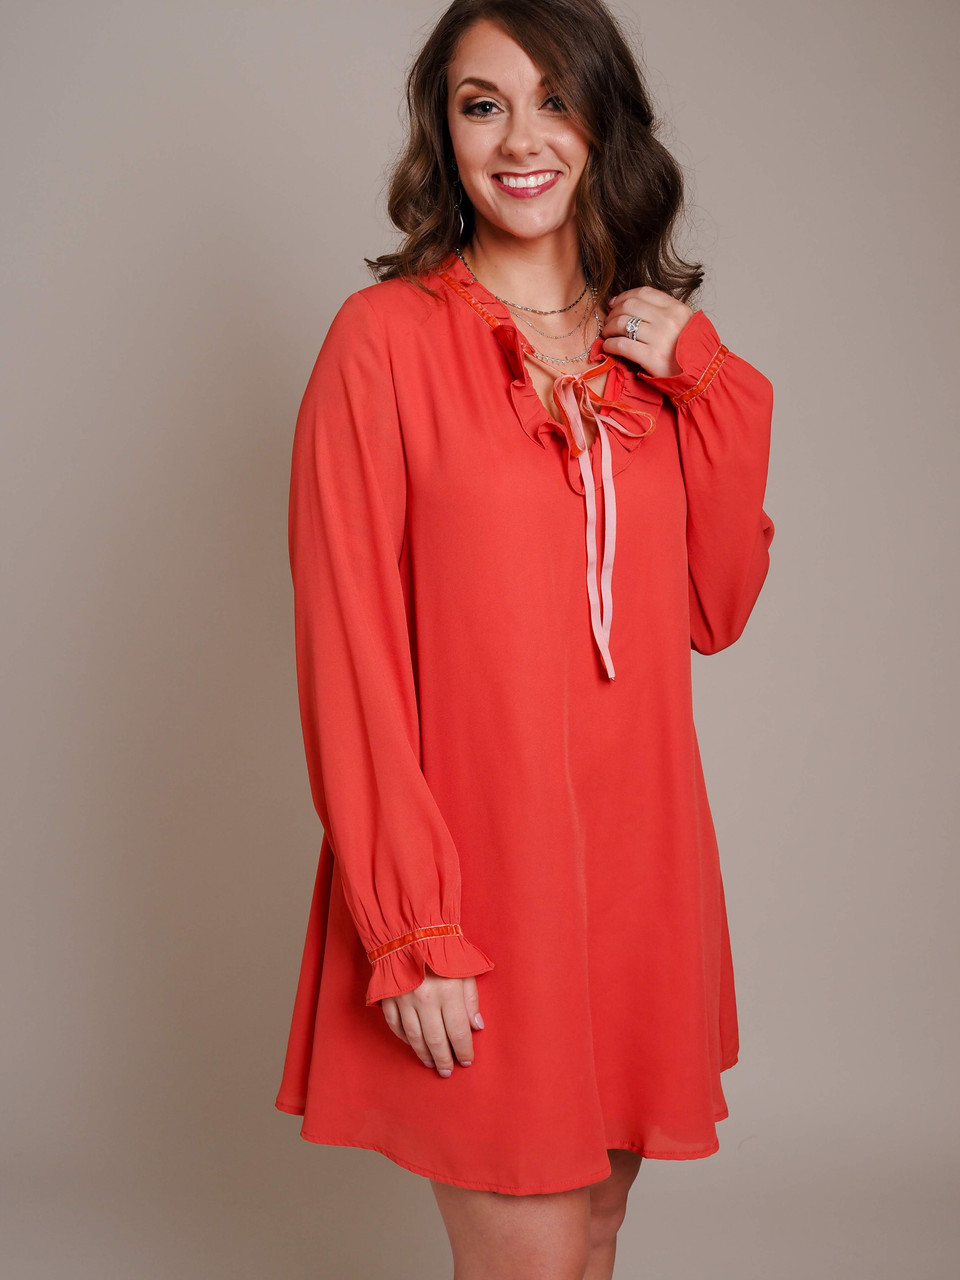 coral ruffle tie neck dress